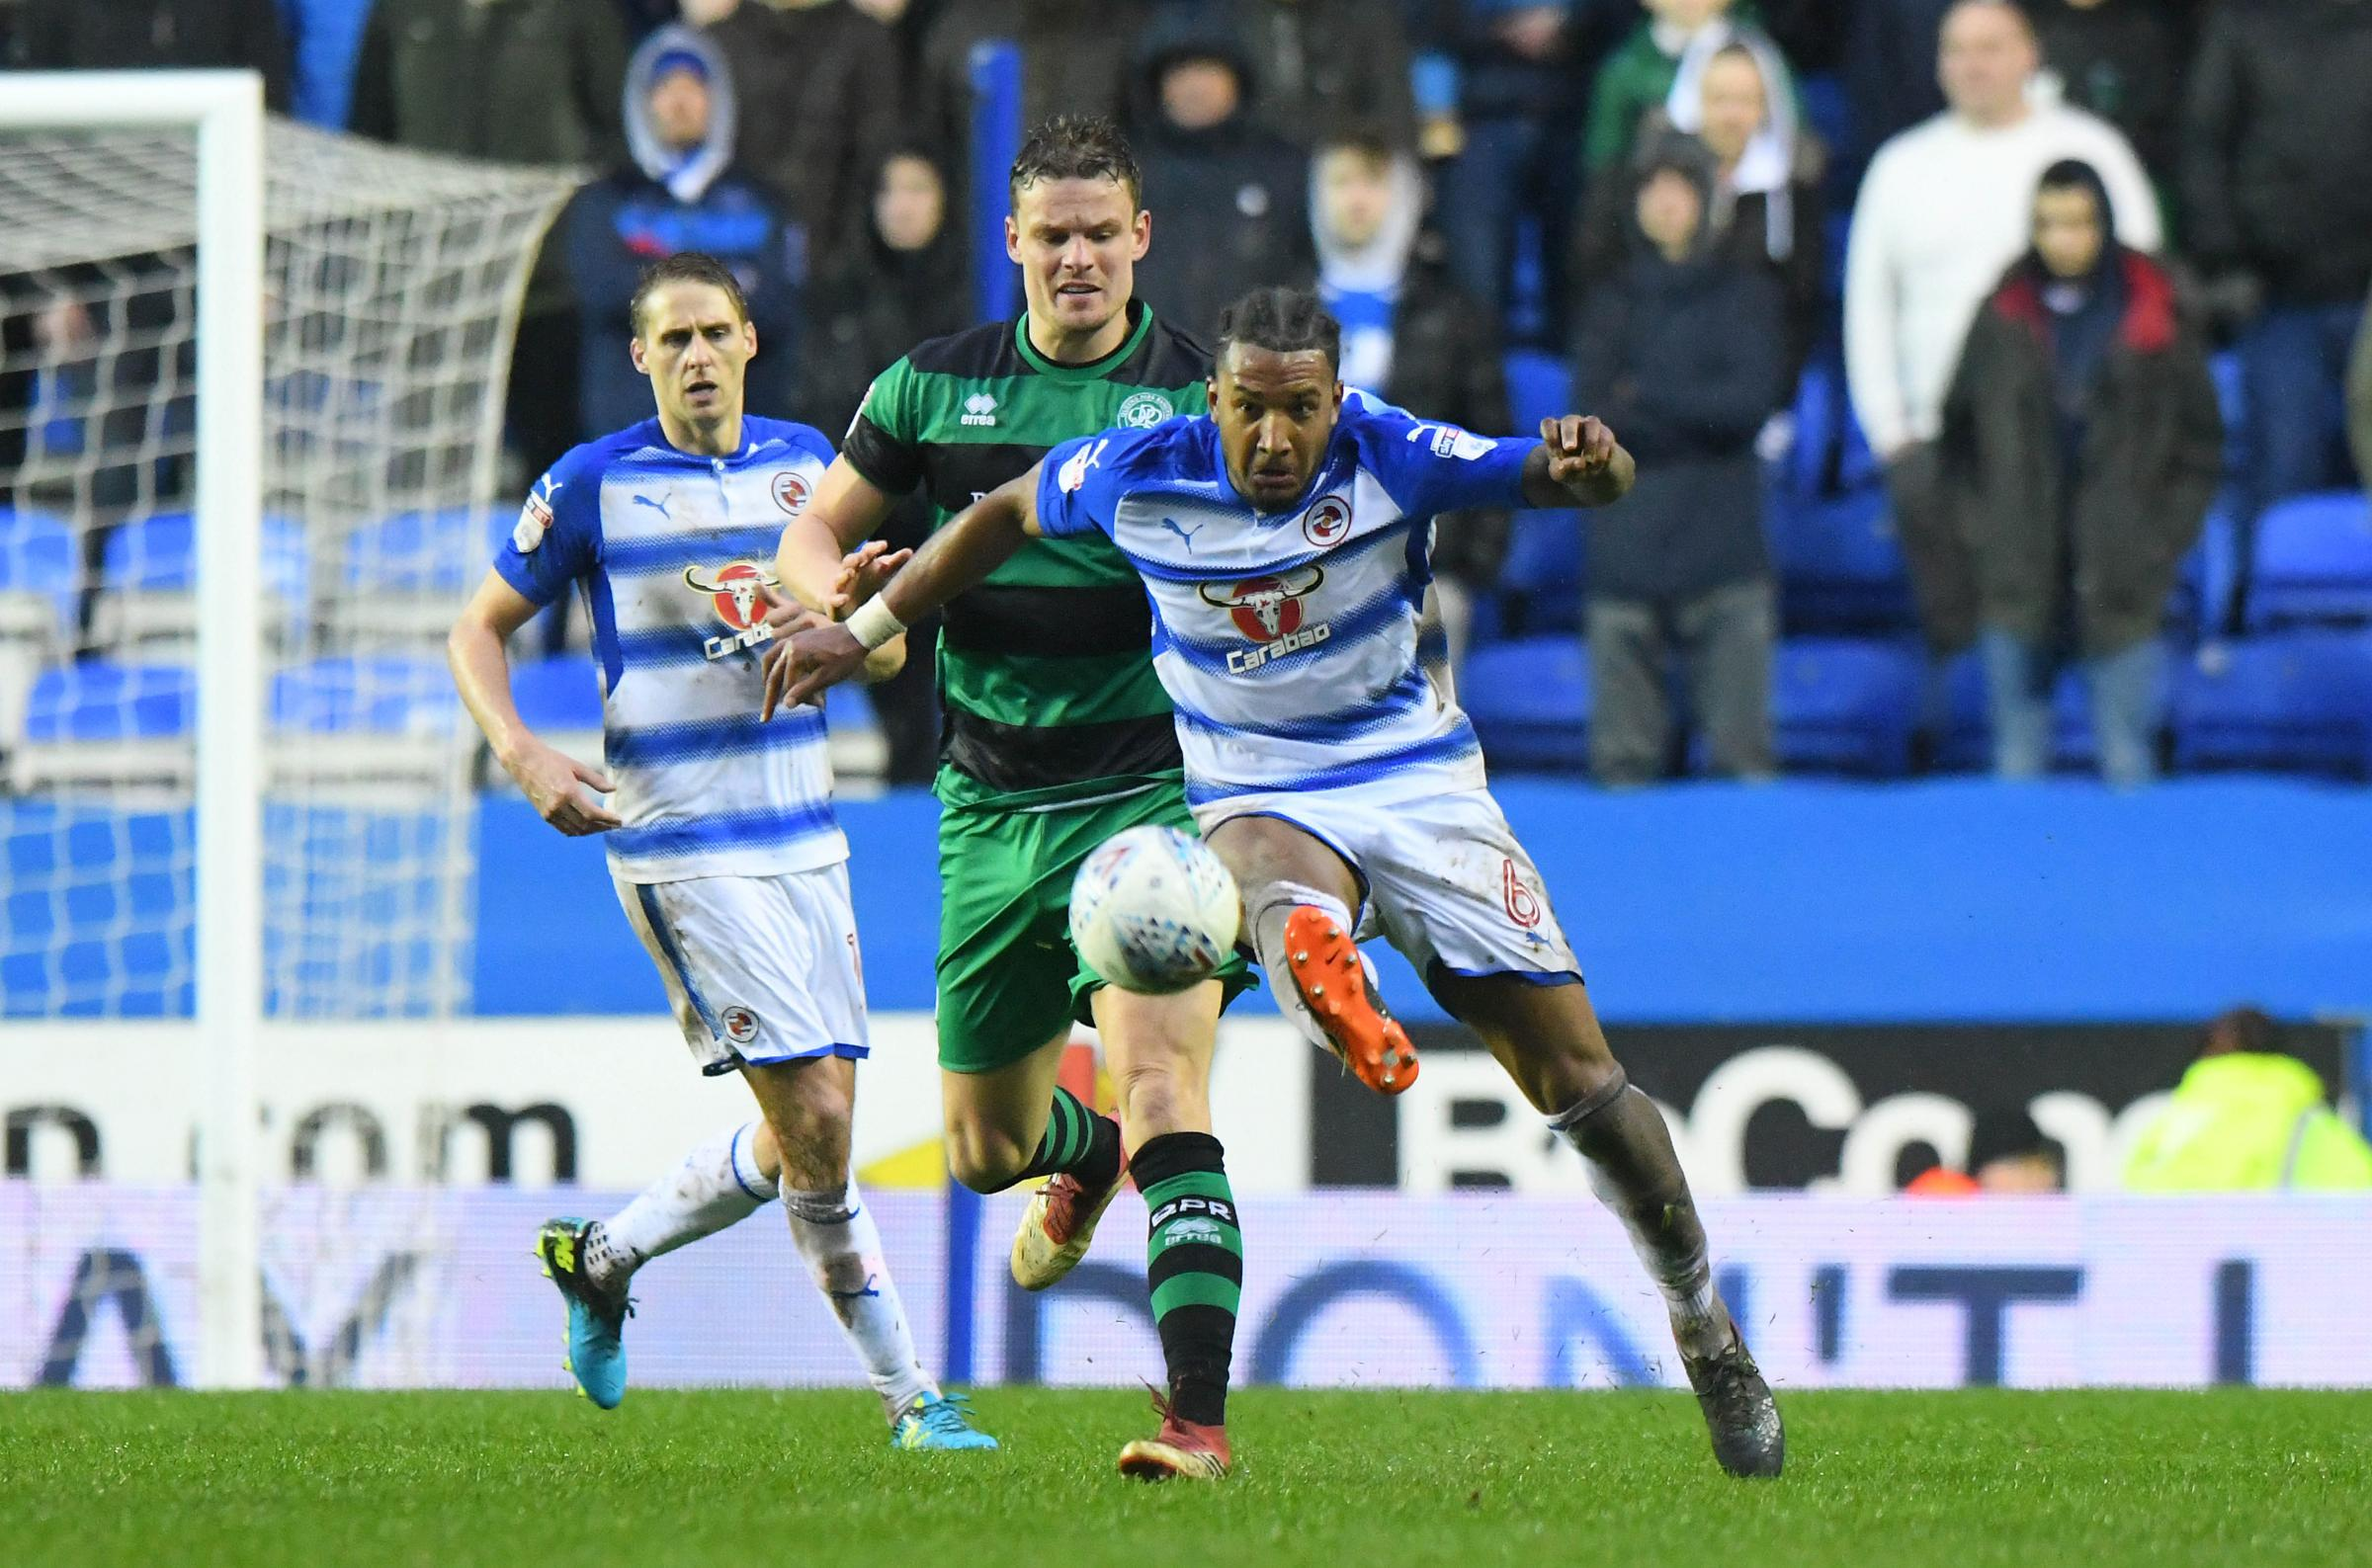 READING FC: Brighton & Hove Albion cool Liam Moore pursuit, reports suggest